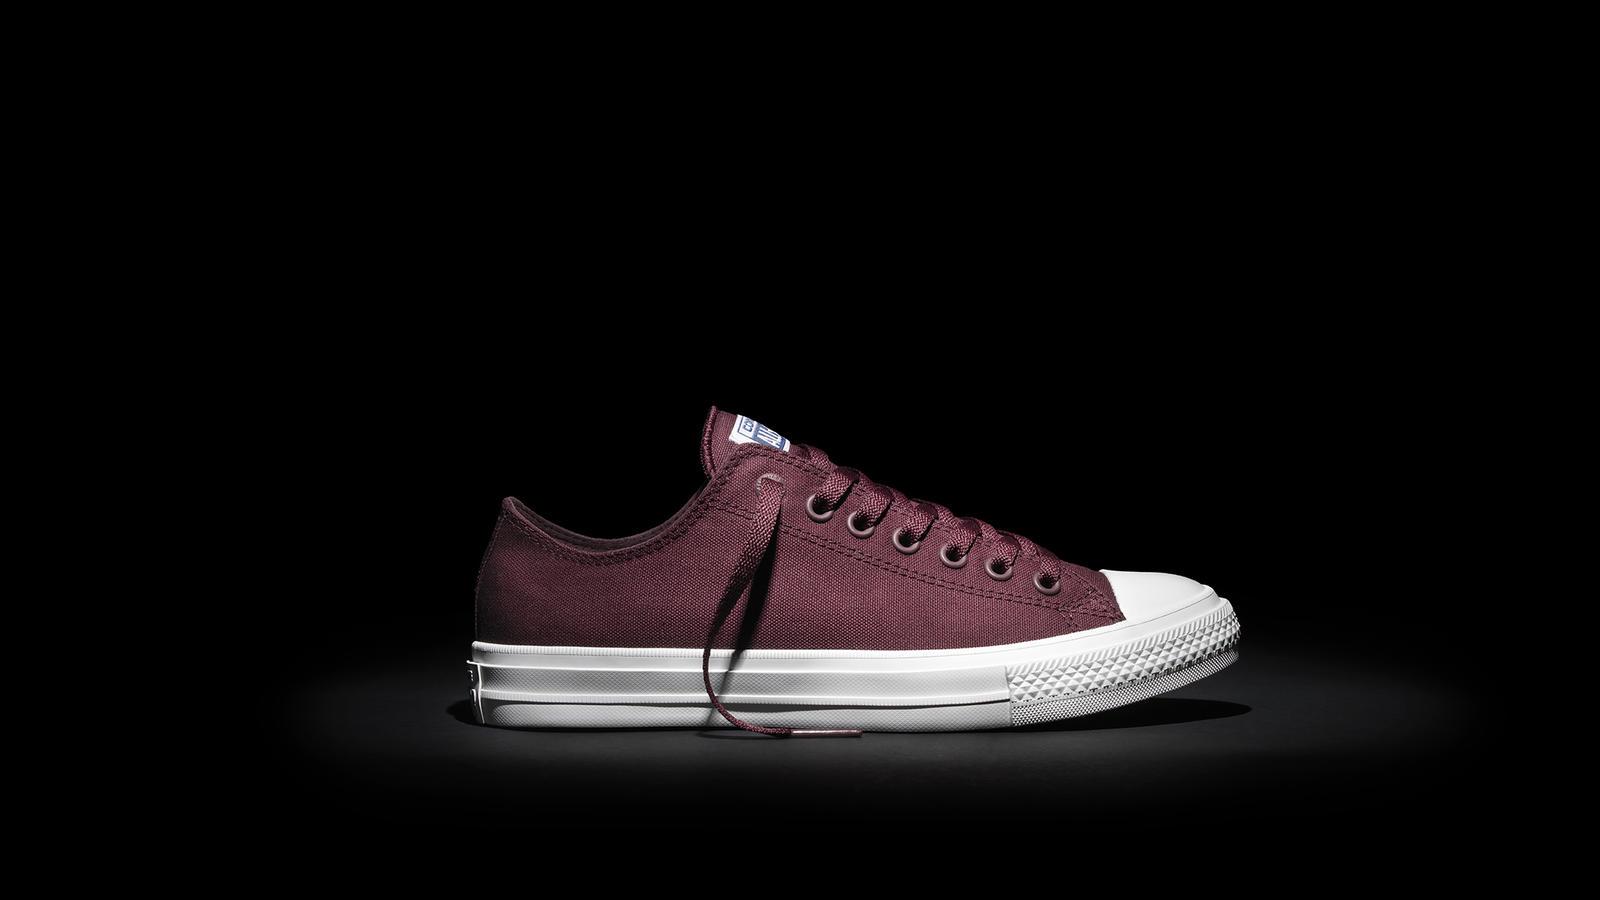 CONVERSE CHUCK TAYLOR ALL STAR II UNVEILS NEW SEASONAL COLORS